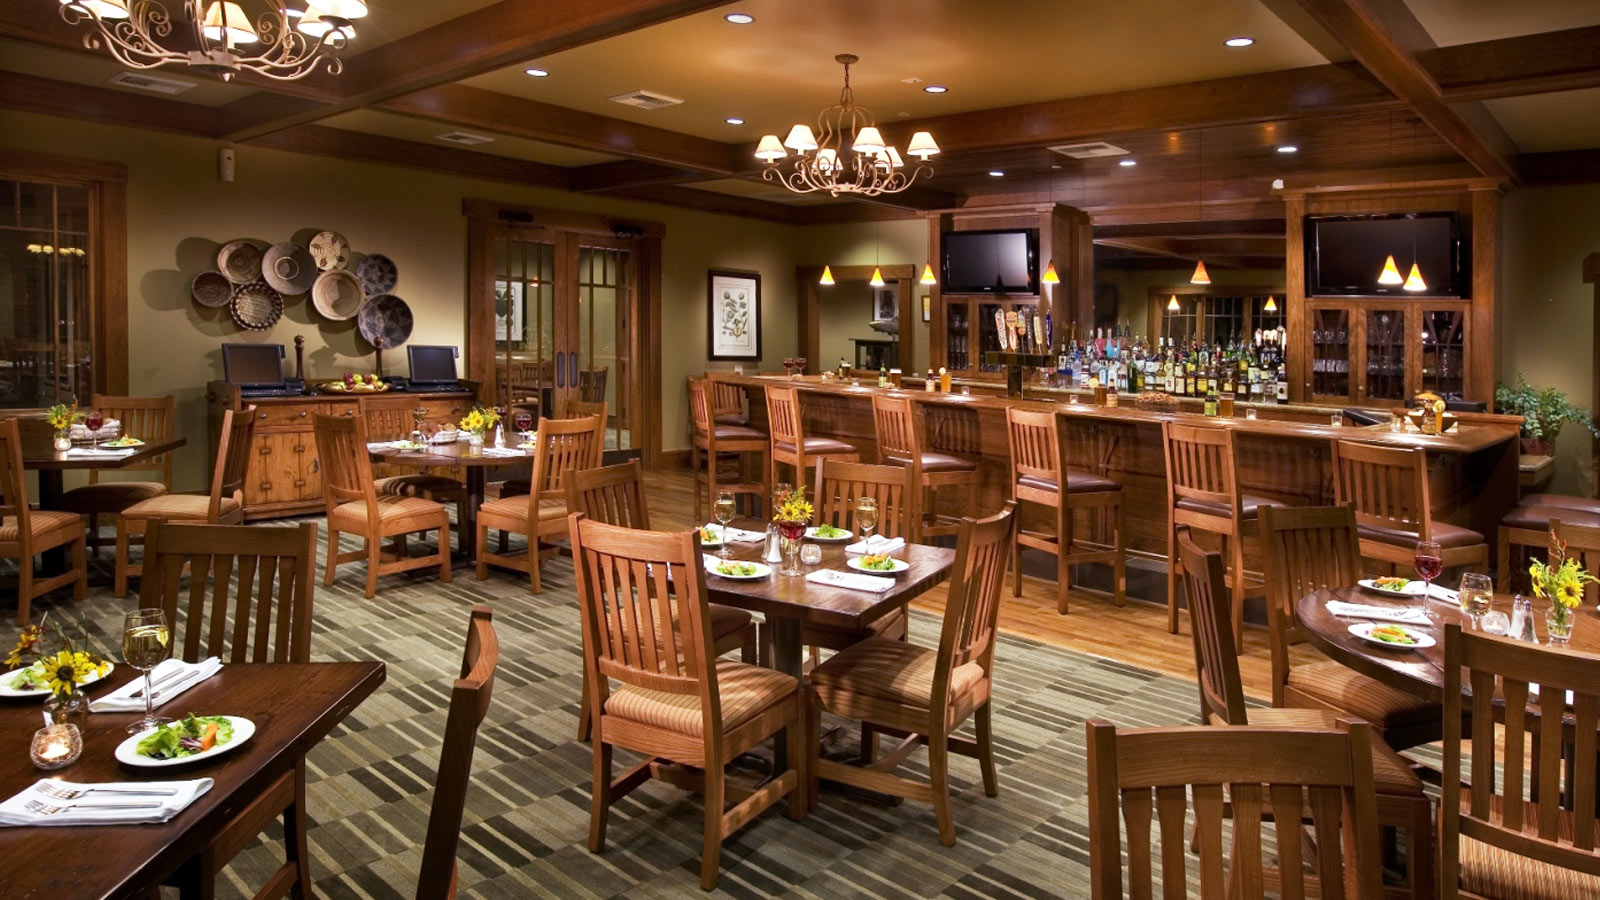 custom woodworking tables chairs and bars for bars and restaurants